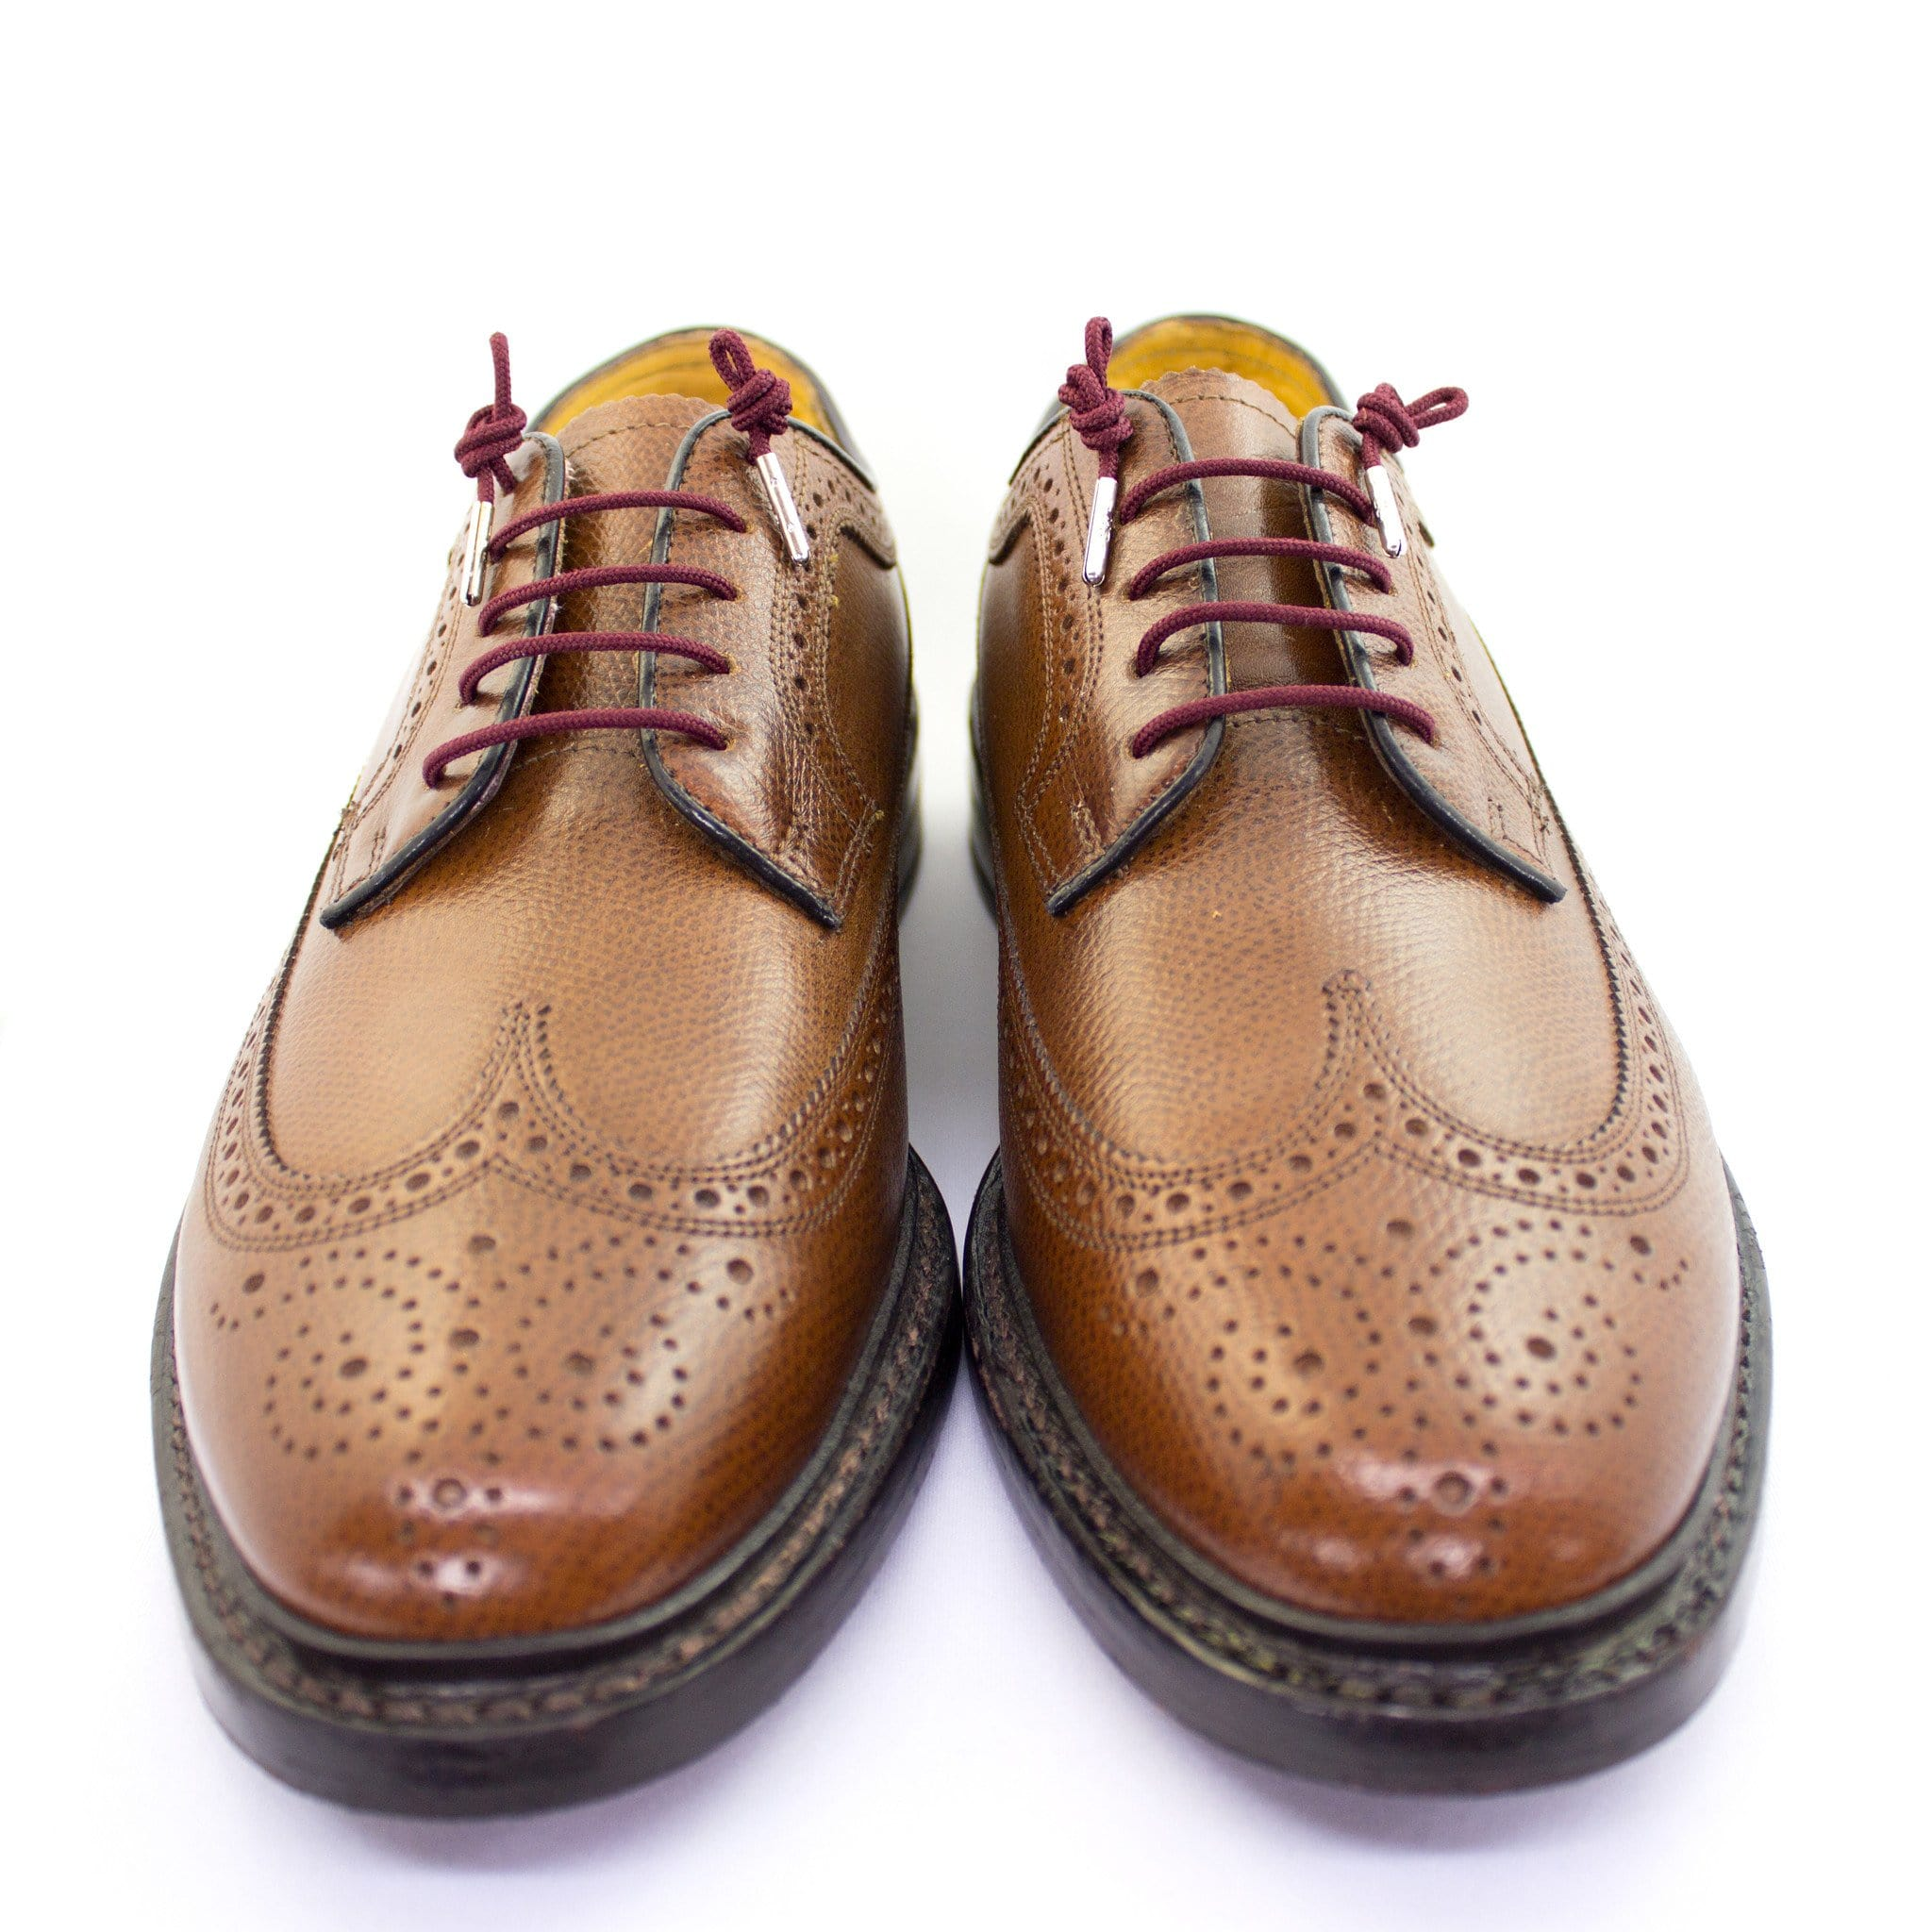 Where to buy shoelaces for dress shoes